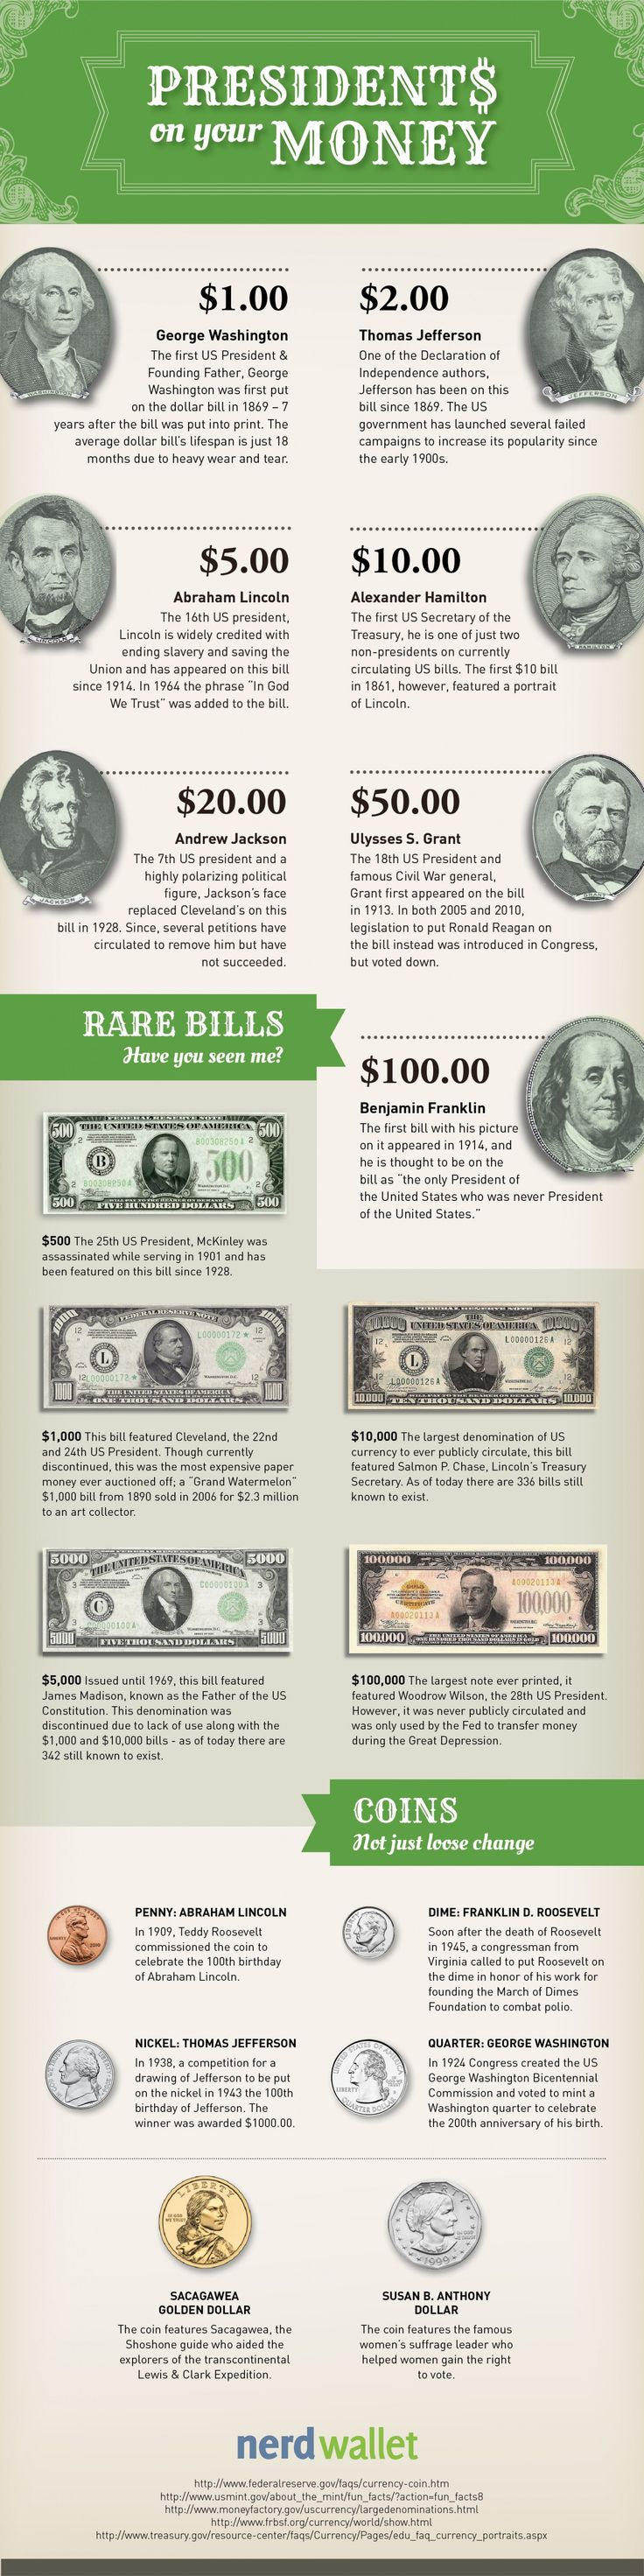 "In honor of U.S. President's Day, NerdWallet researched how our historical leaders came to be on our money. The Treasury.gov Resource Center says, ""Our records do not suggest why certain Presidents and statesmen were chosen for specific denominations."" Is that really so? NerdWallet breaks down which presidents are featured on U.S. currency – including small bills, coins, and rare denominations – and why."